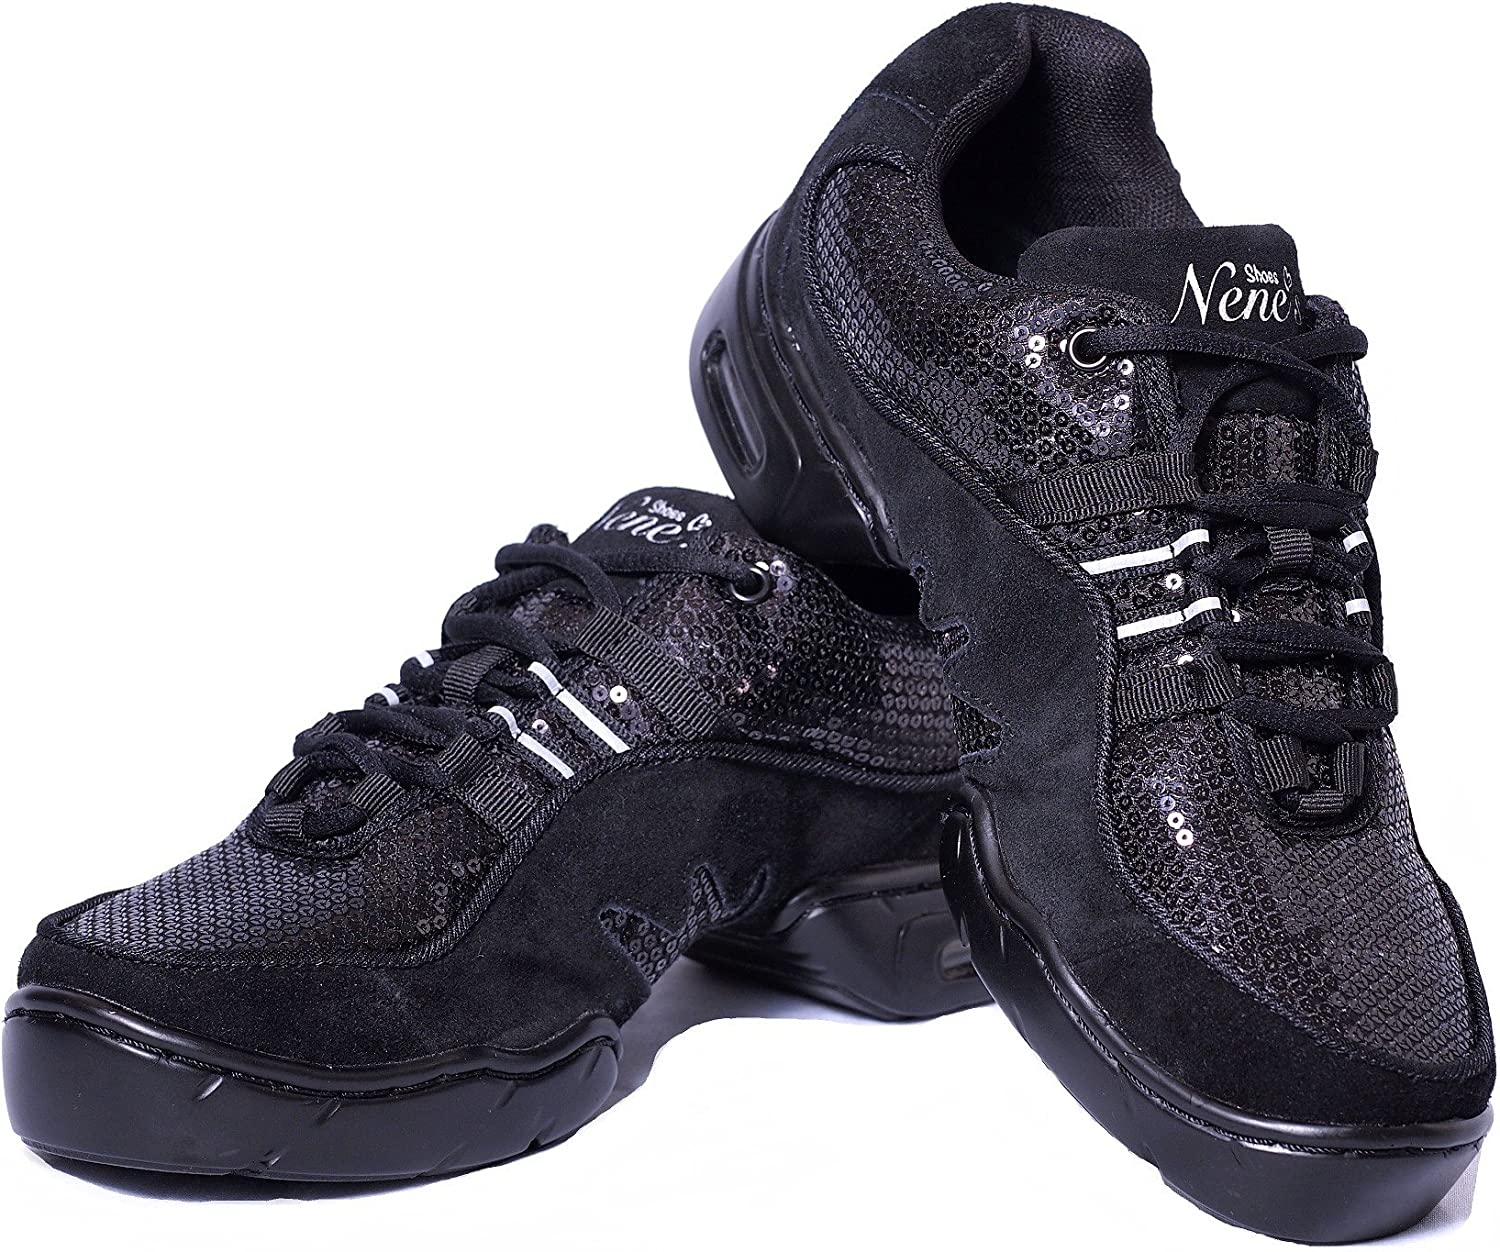 Nene's Collection Low Oakland Mall price Best Dance Fitness - Shoes Wo Sneakers Sparkly